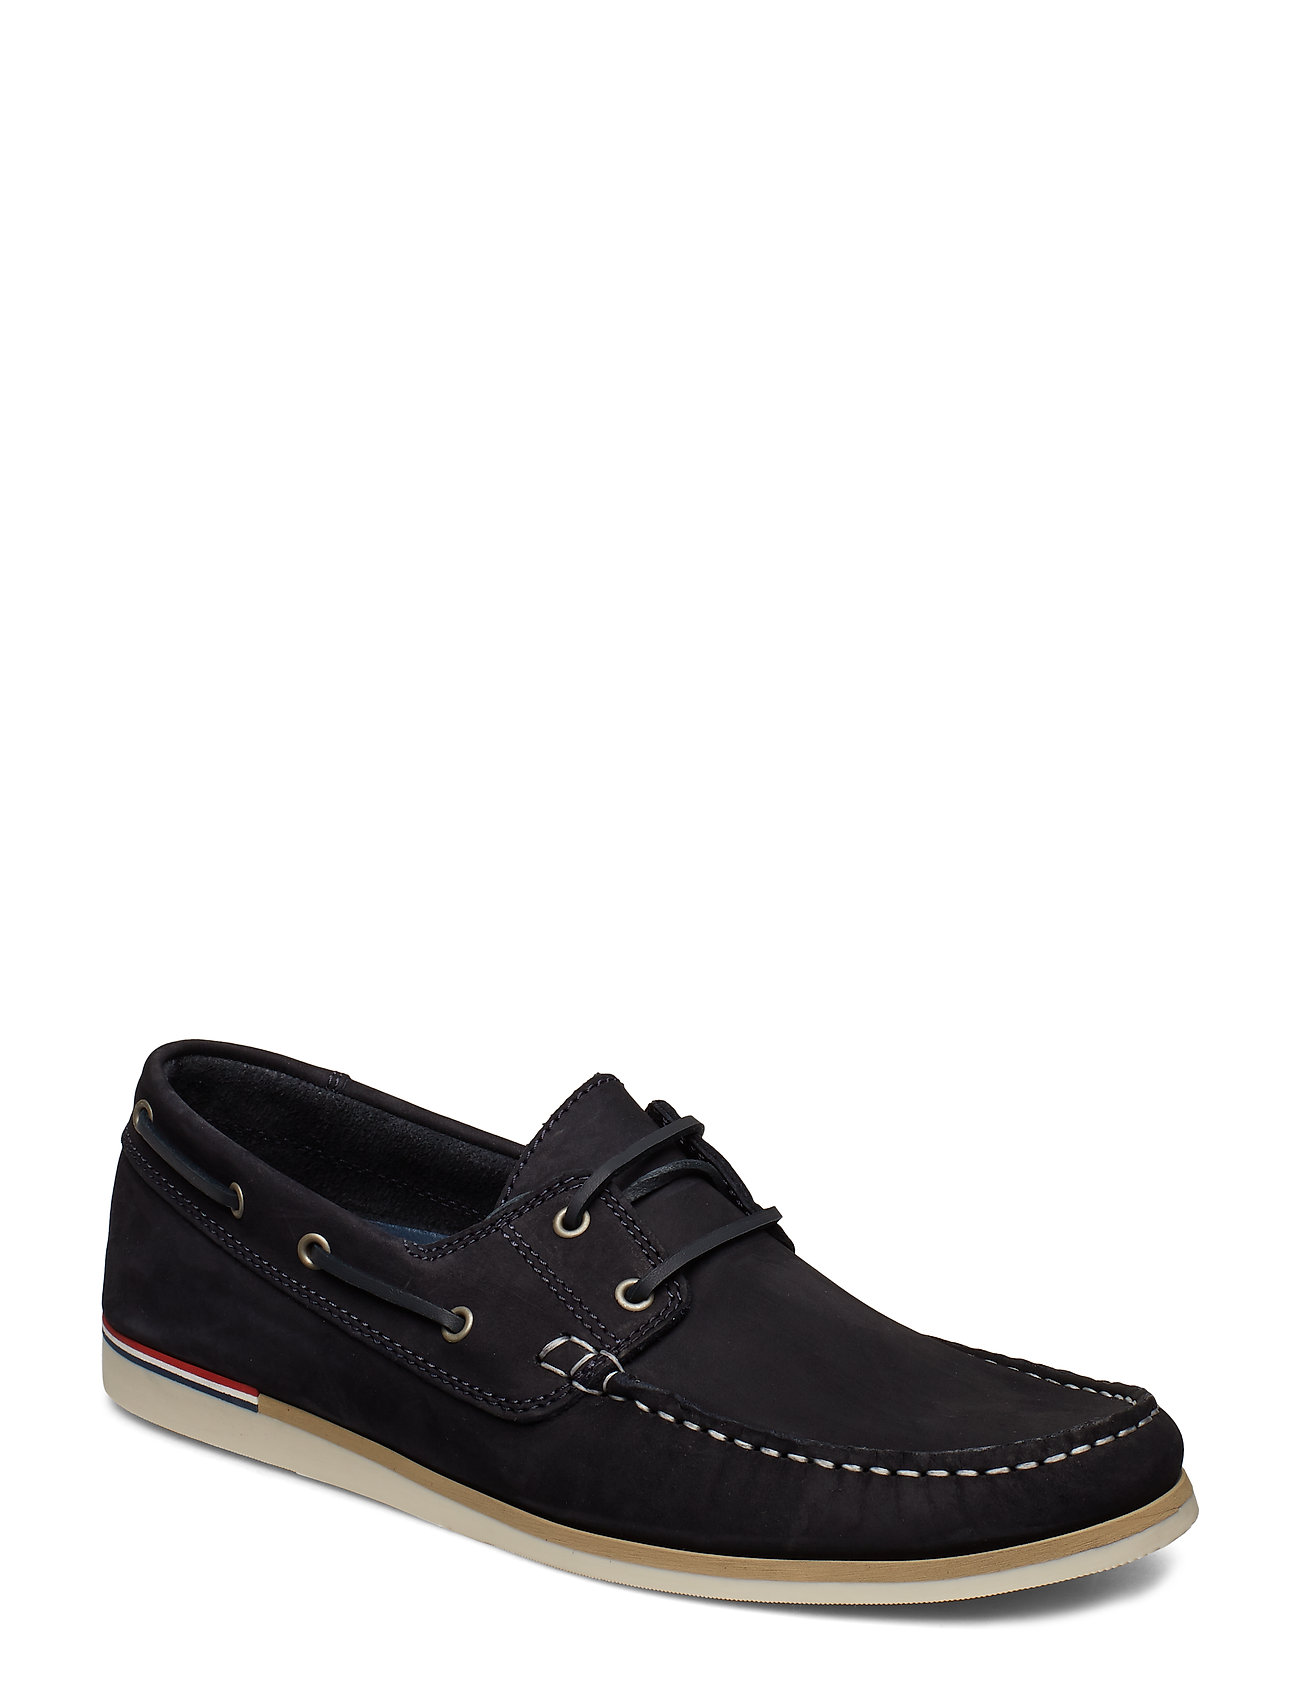 Dune London BLAINESS - NAVY-NUBUCK